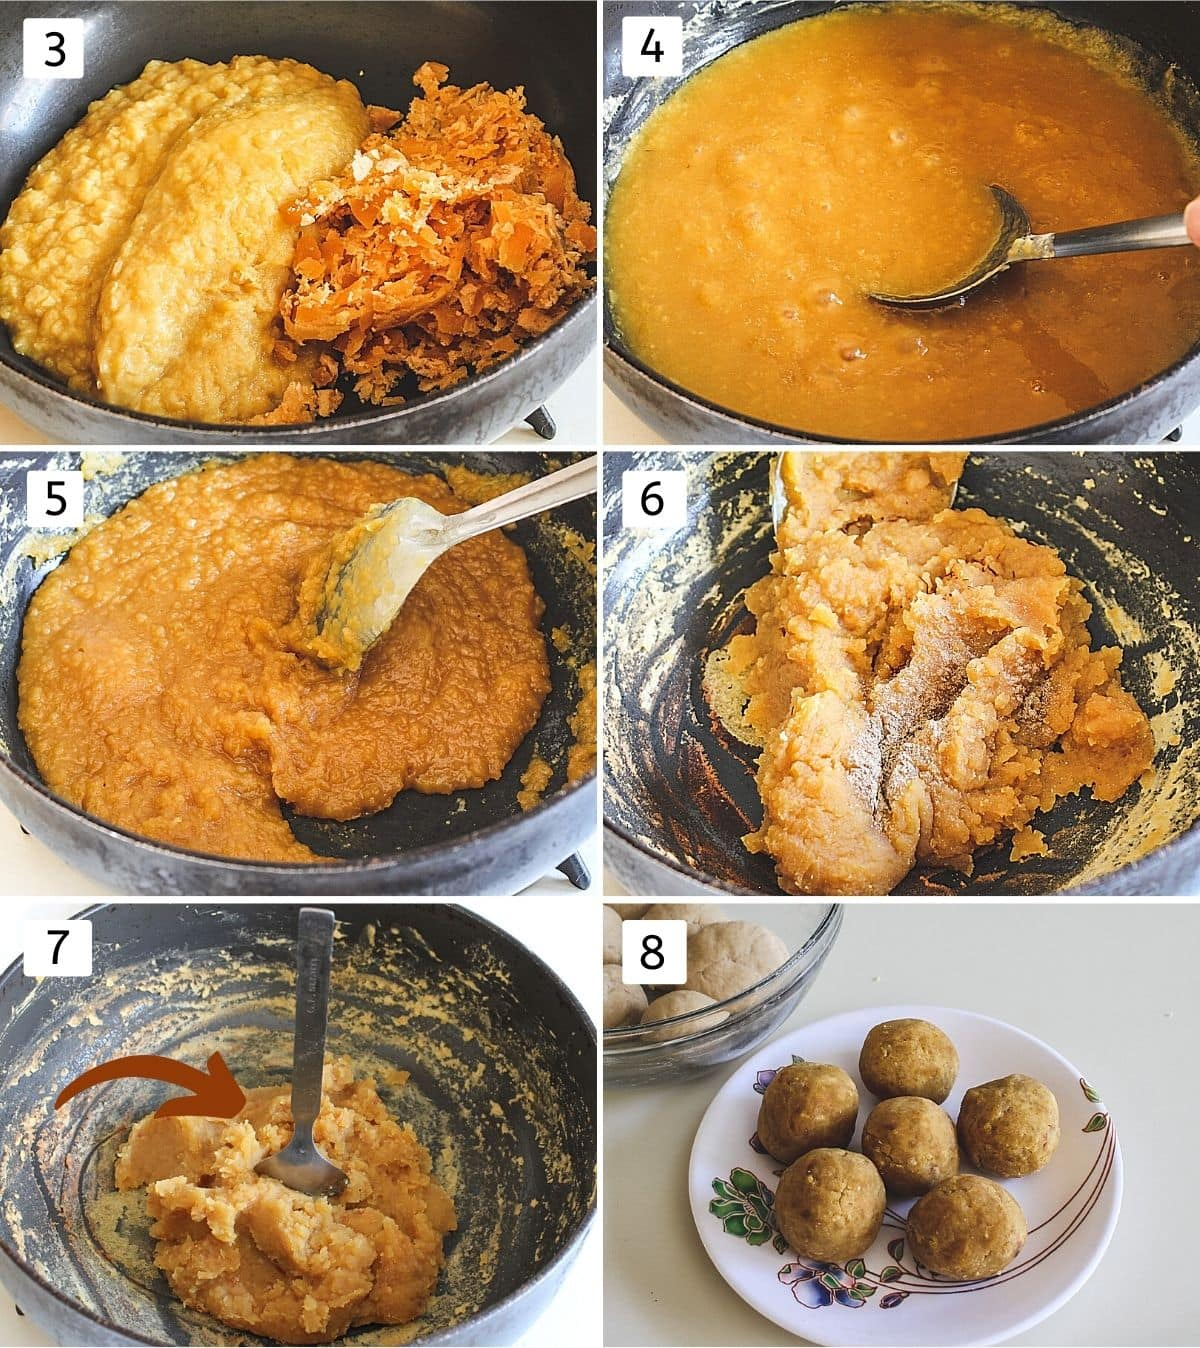 Collage of 6 images making stuffing. Shows cooked dal, jaggery in a pan, melted jaggery, cooking, adding cardamom, balls of stuffing